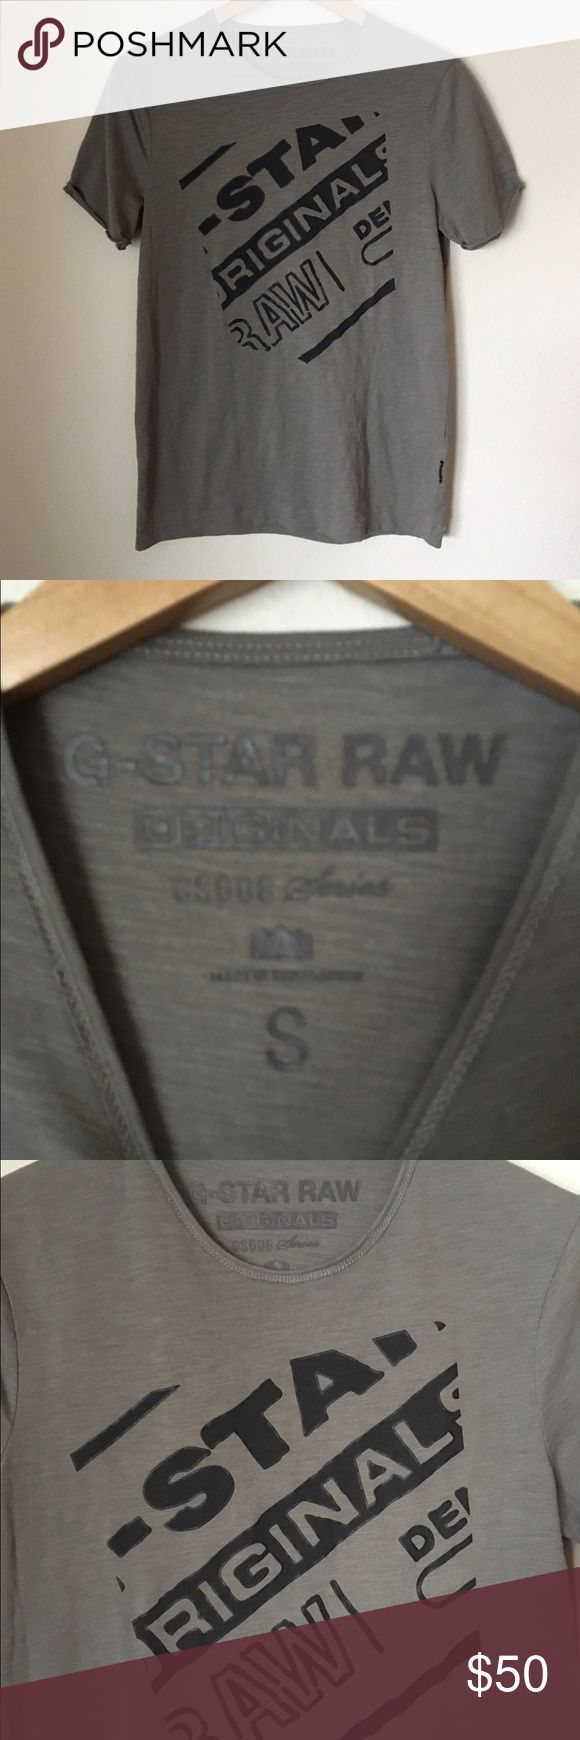 "G Star Raw T-Shirt Size Small Unisex? G Star Raw T-shirt, size small.  From the GS008 Series.  Raw sleeves, stitched in the center.  G Star Raw stitched on left sleeve as pictured, G-Star logo tag on left side hem near bottom of the shirt.  I honestly do not know if this is men's, women's, or unisex.  The measurements are as follows.  Chest-19.5"" Length-28"" G Star Raw Tops Tees - Short Sleeve"